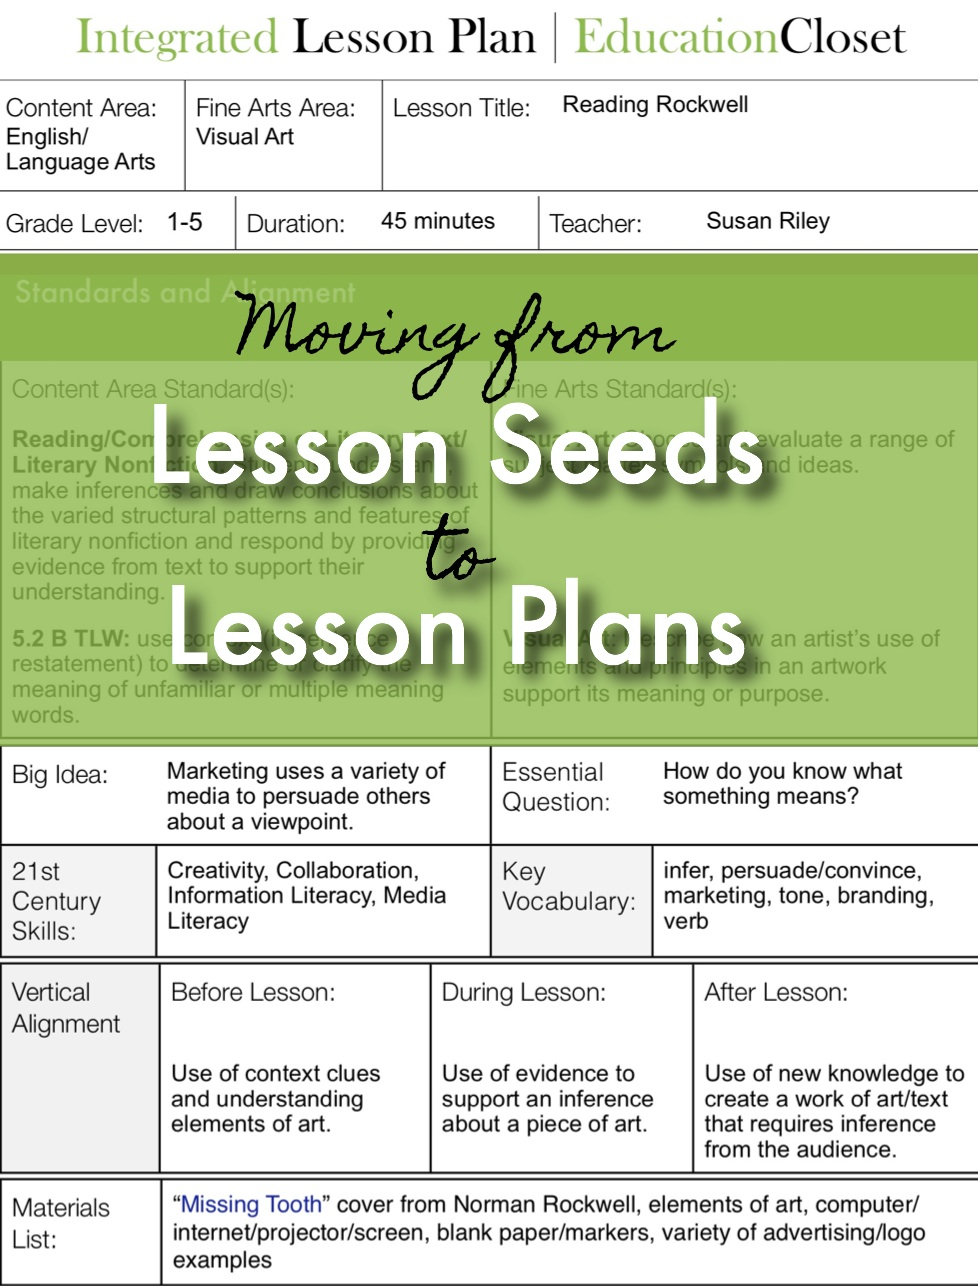 Moving from lesson seeds to lesson plans educationcloset